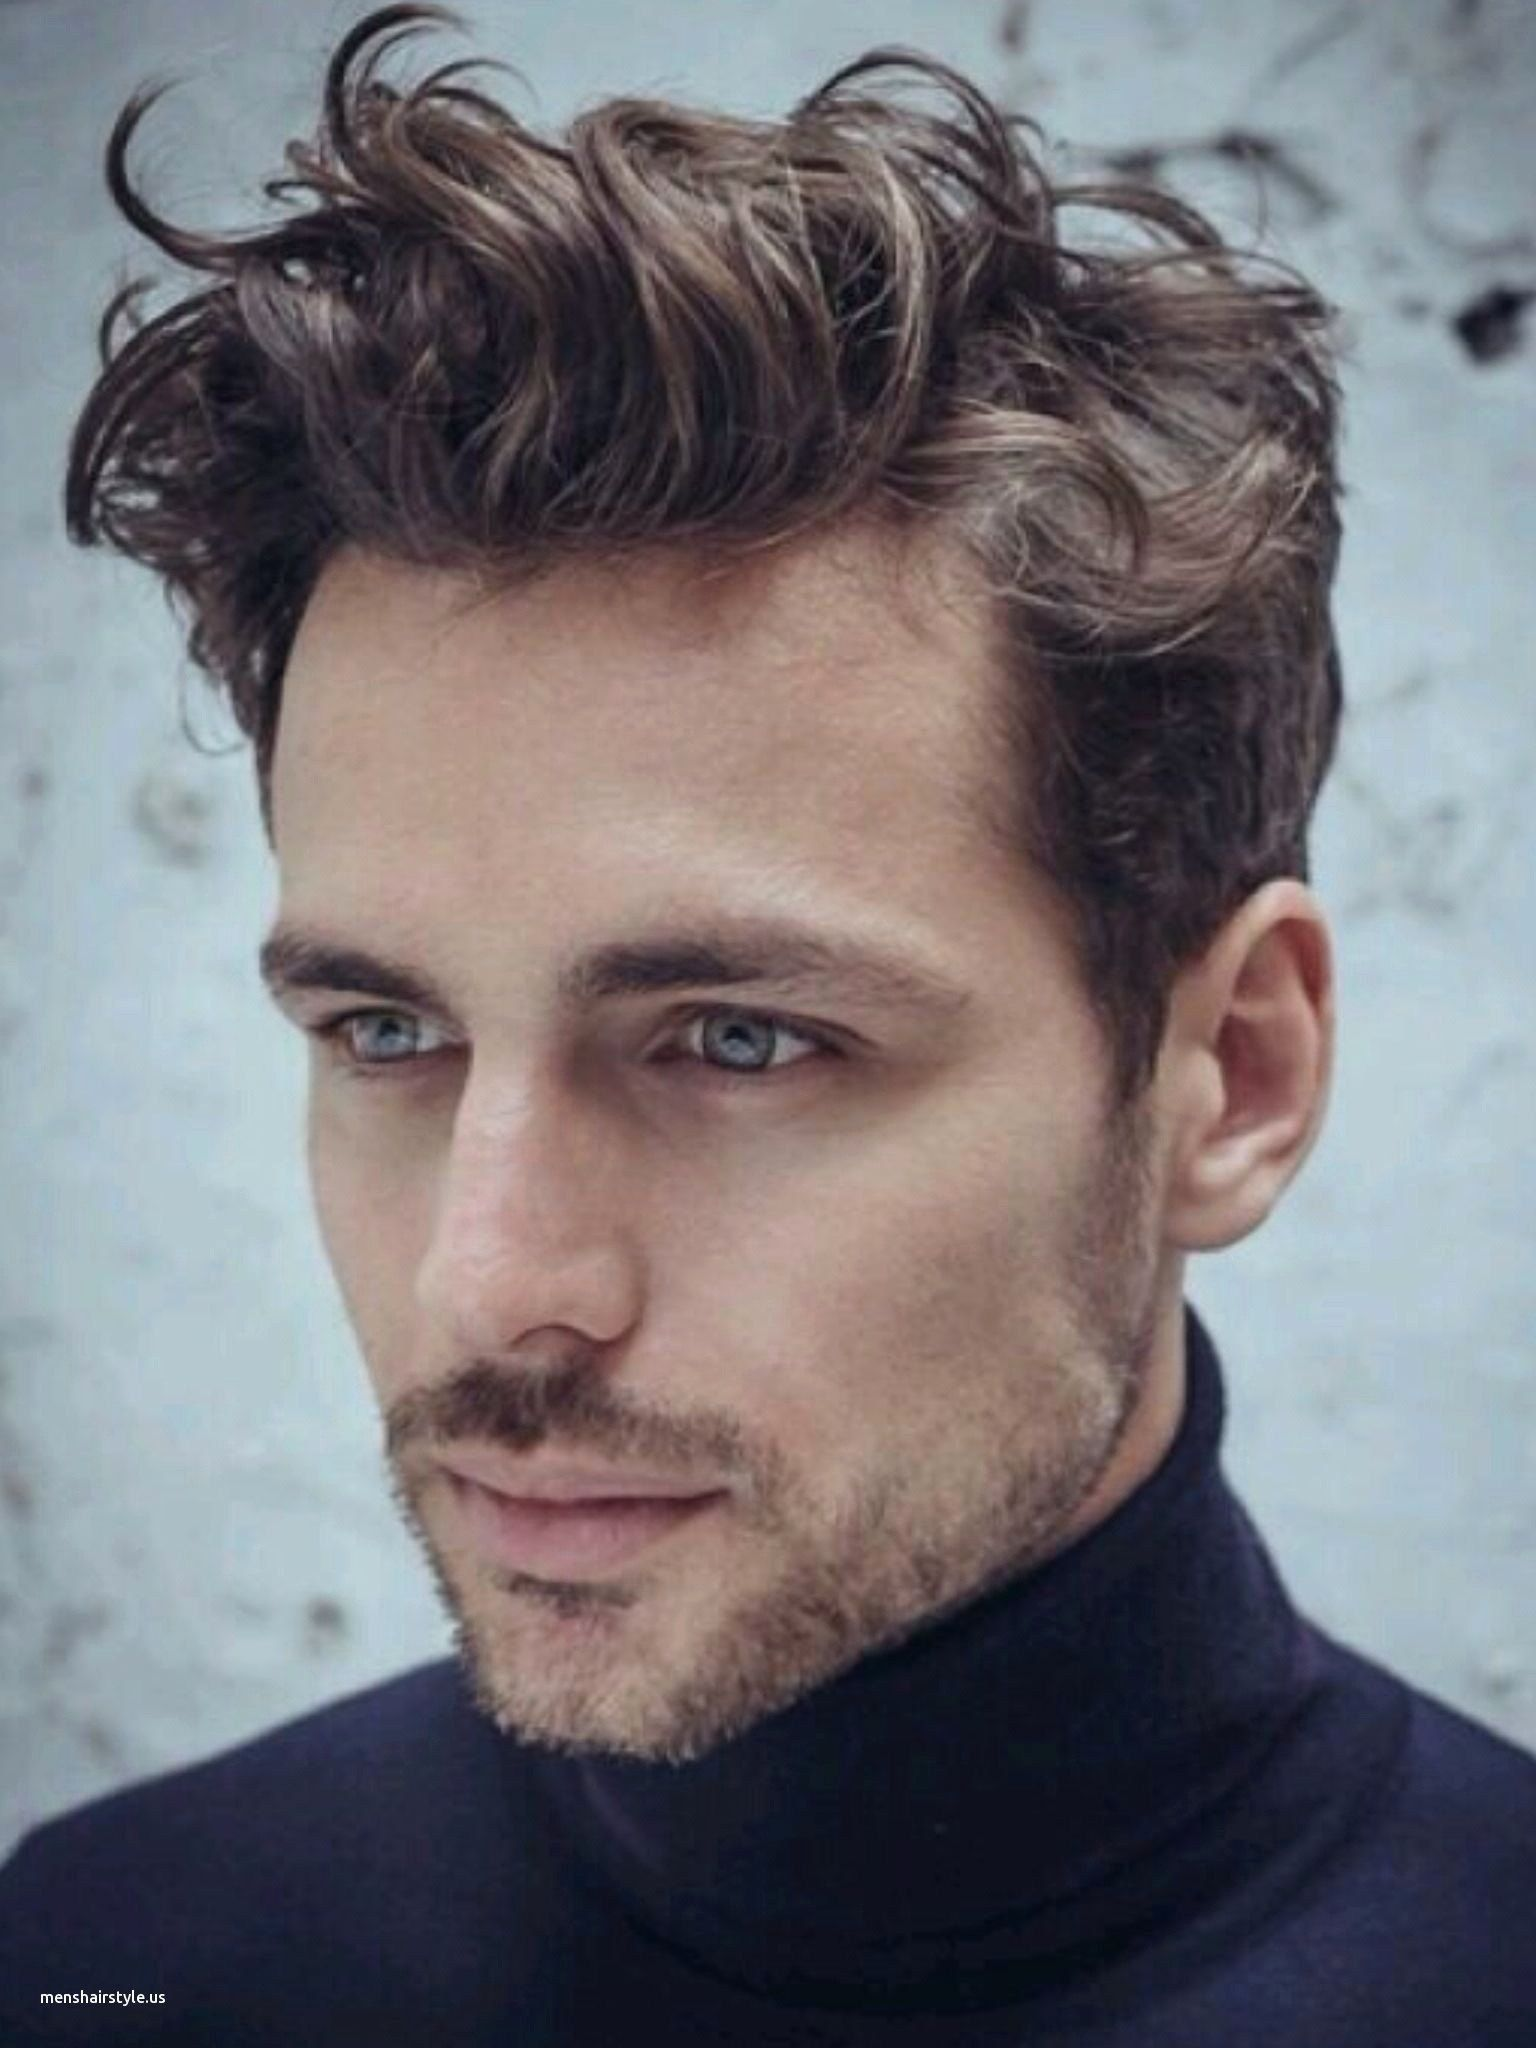 Flattering Hairstyles For Men With Round Faces Best Hairstyles For Men With Round Faces | Wavy ...